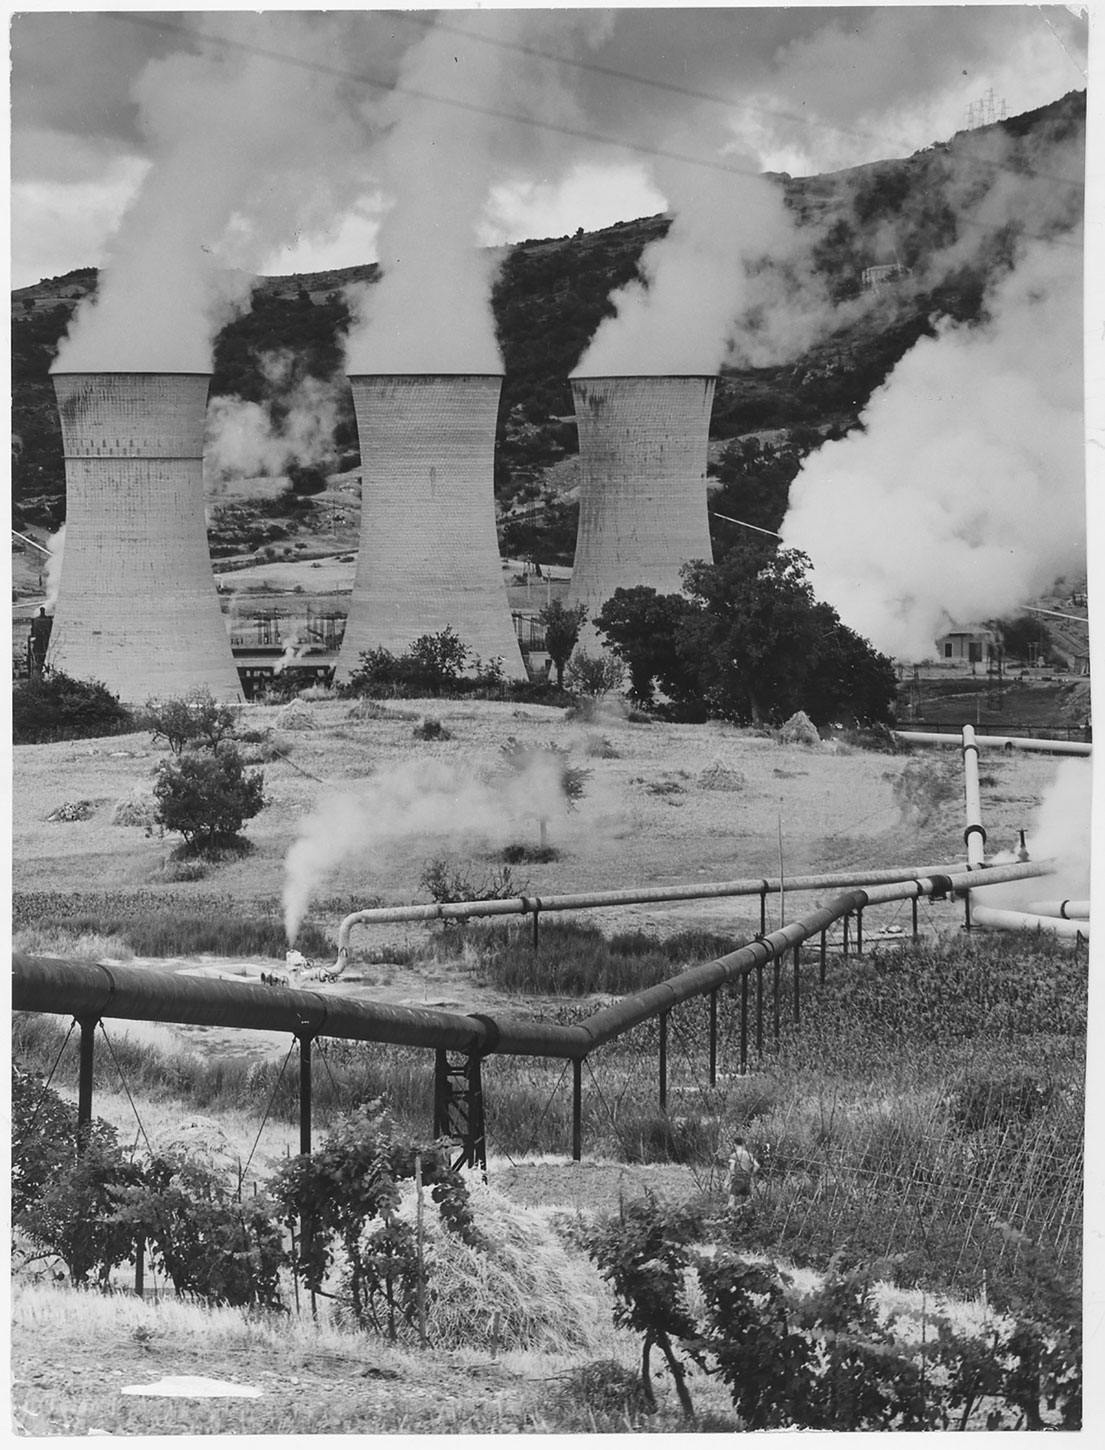 (1) Larderello, Italy. View of cooling towers and steam Transformers at Number 2 power station © Wikipedia